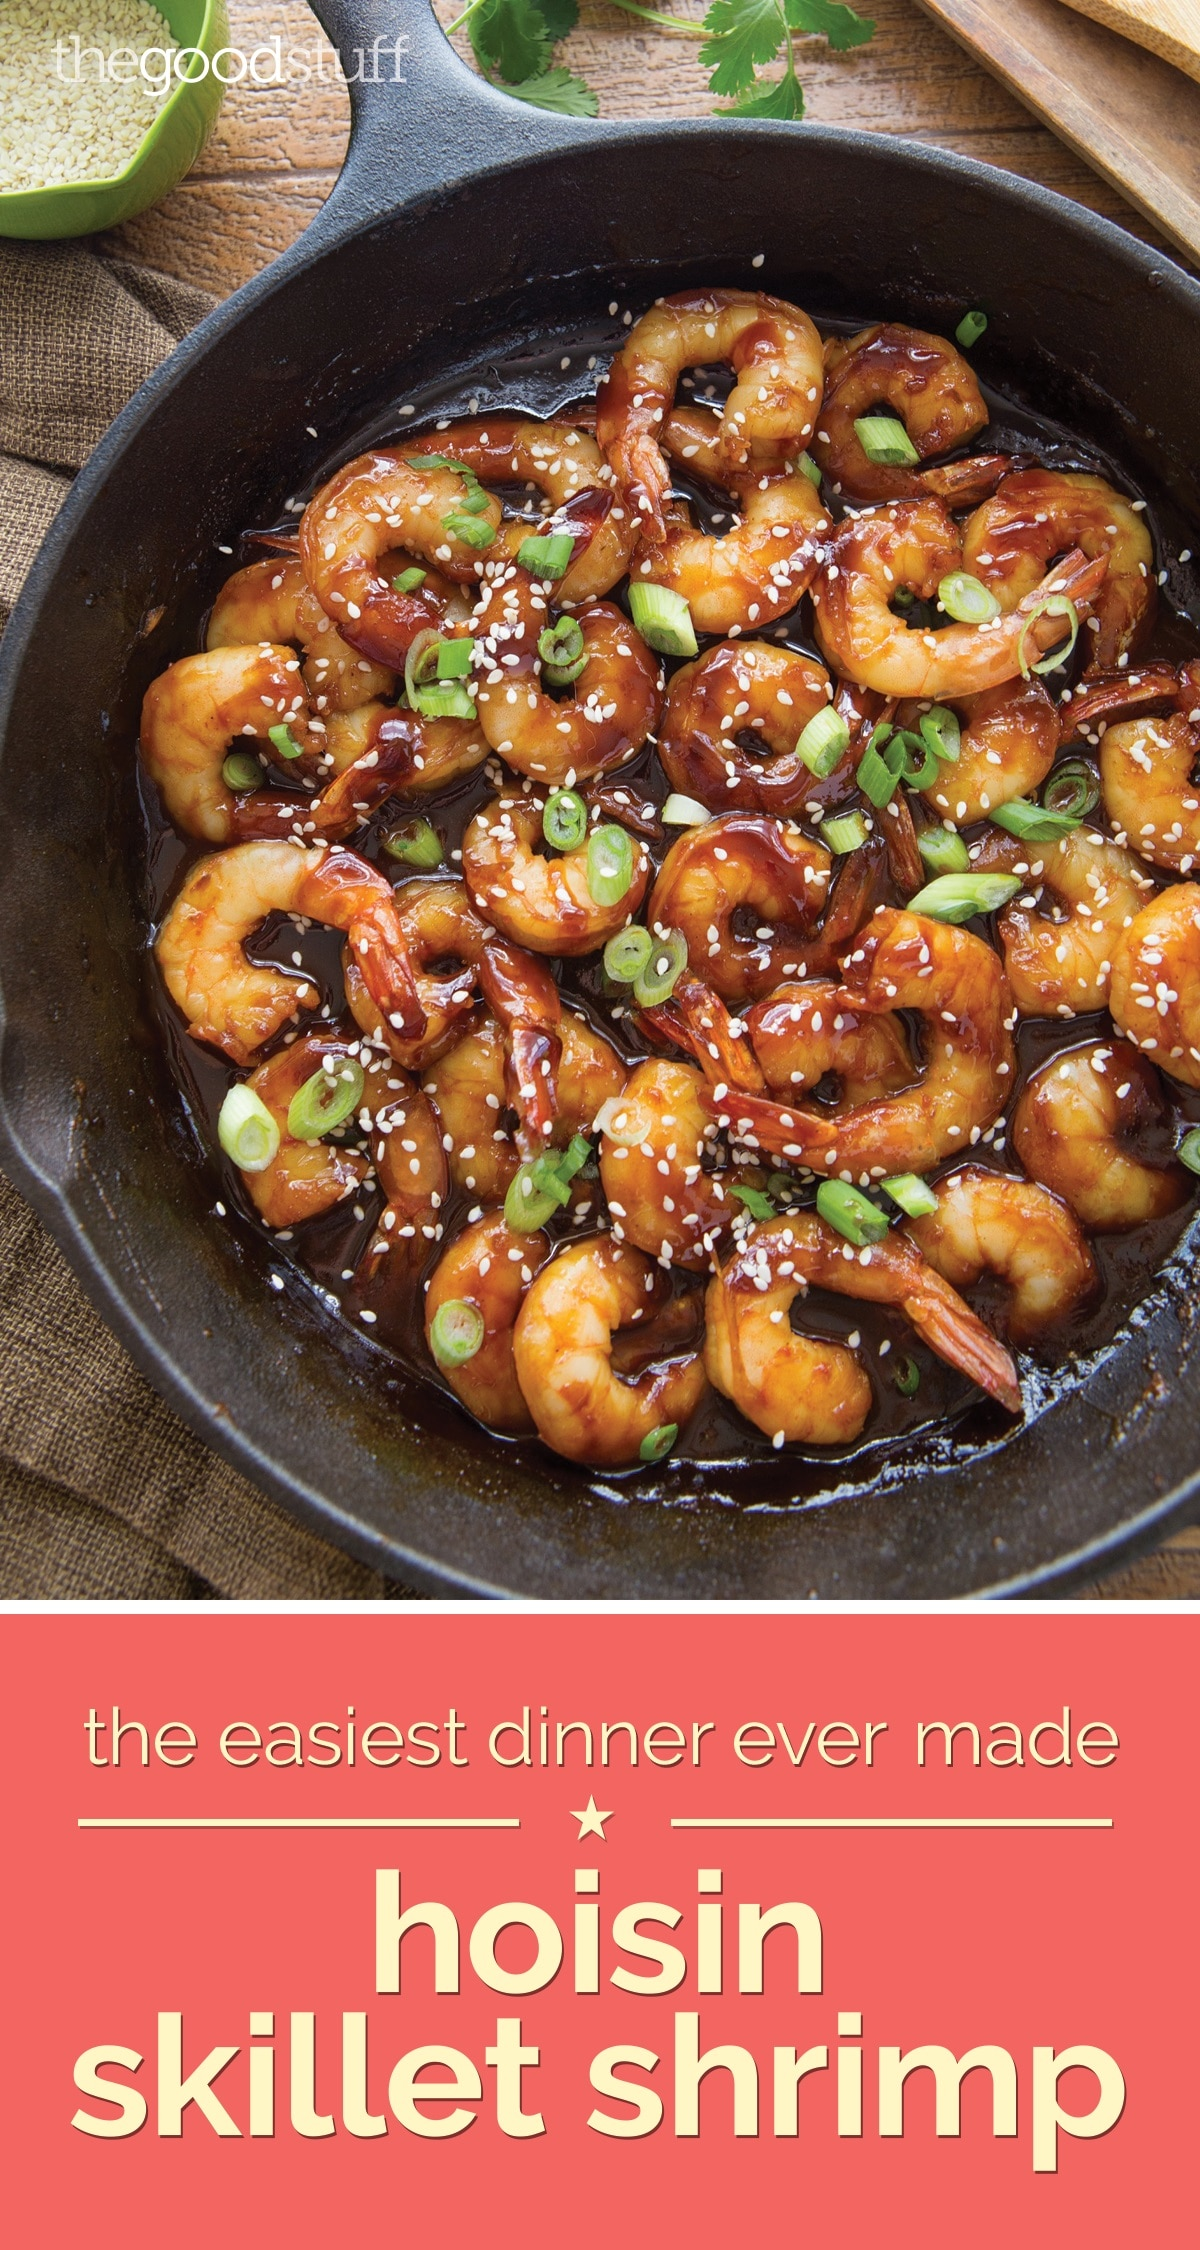 food-hoisin-skillet-shrimp